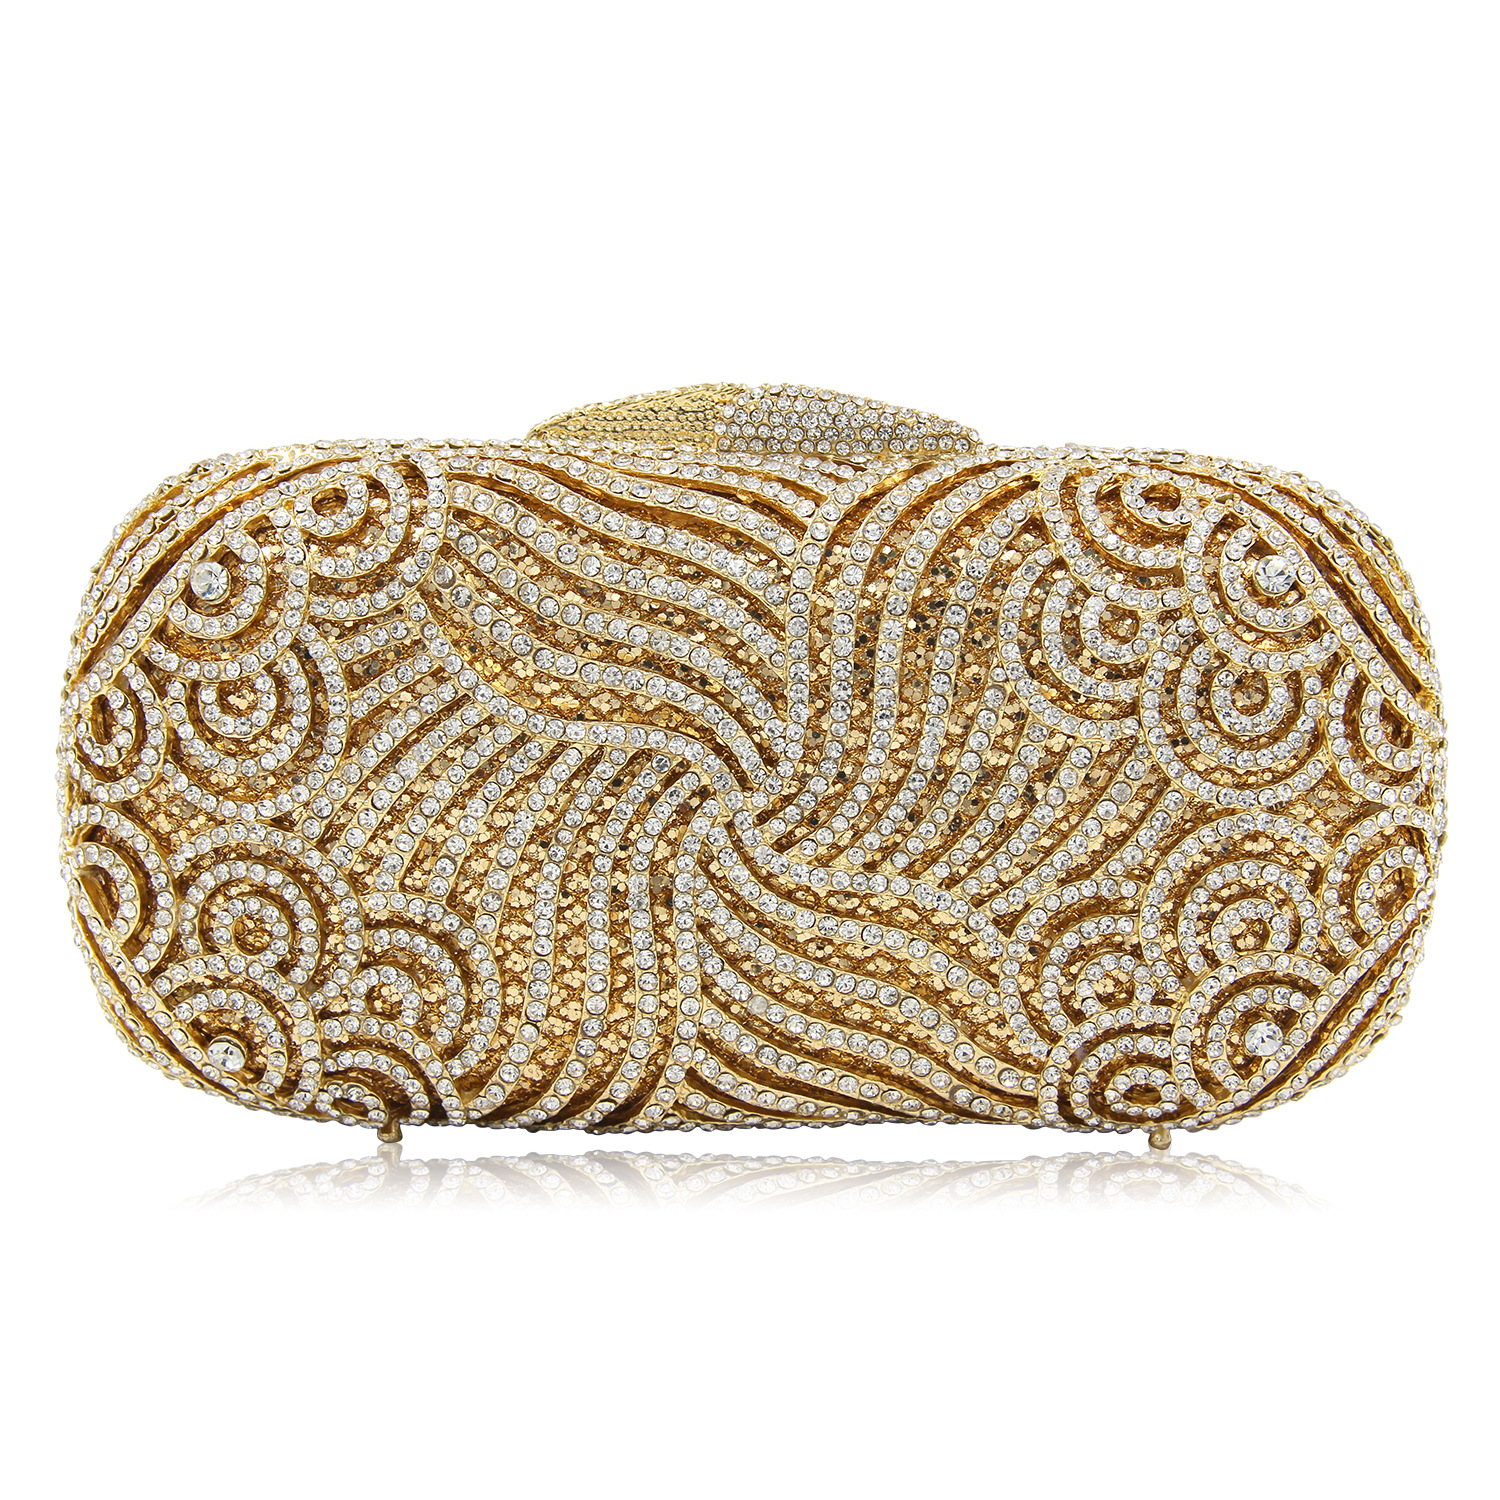 Women Bag Luxury Crystal Evening Clutch Full crystal Diamond Clutches Purses Party Gold Bags colourful bird women evening luxury bags crystal clutches laides evening bag female party hard case bags wedding clutch purses